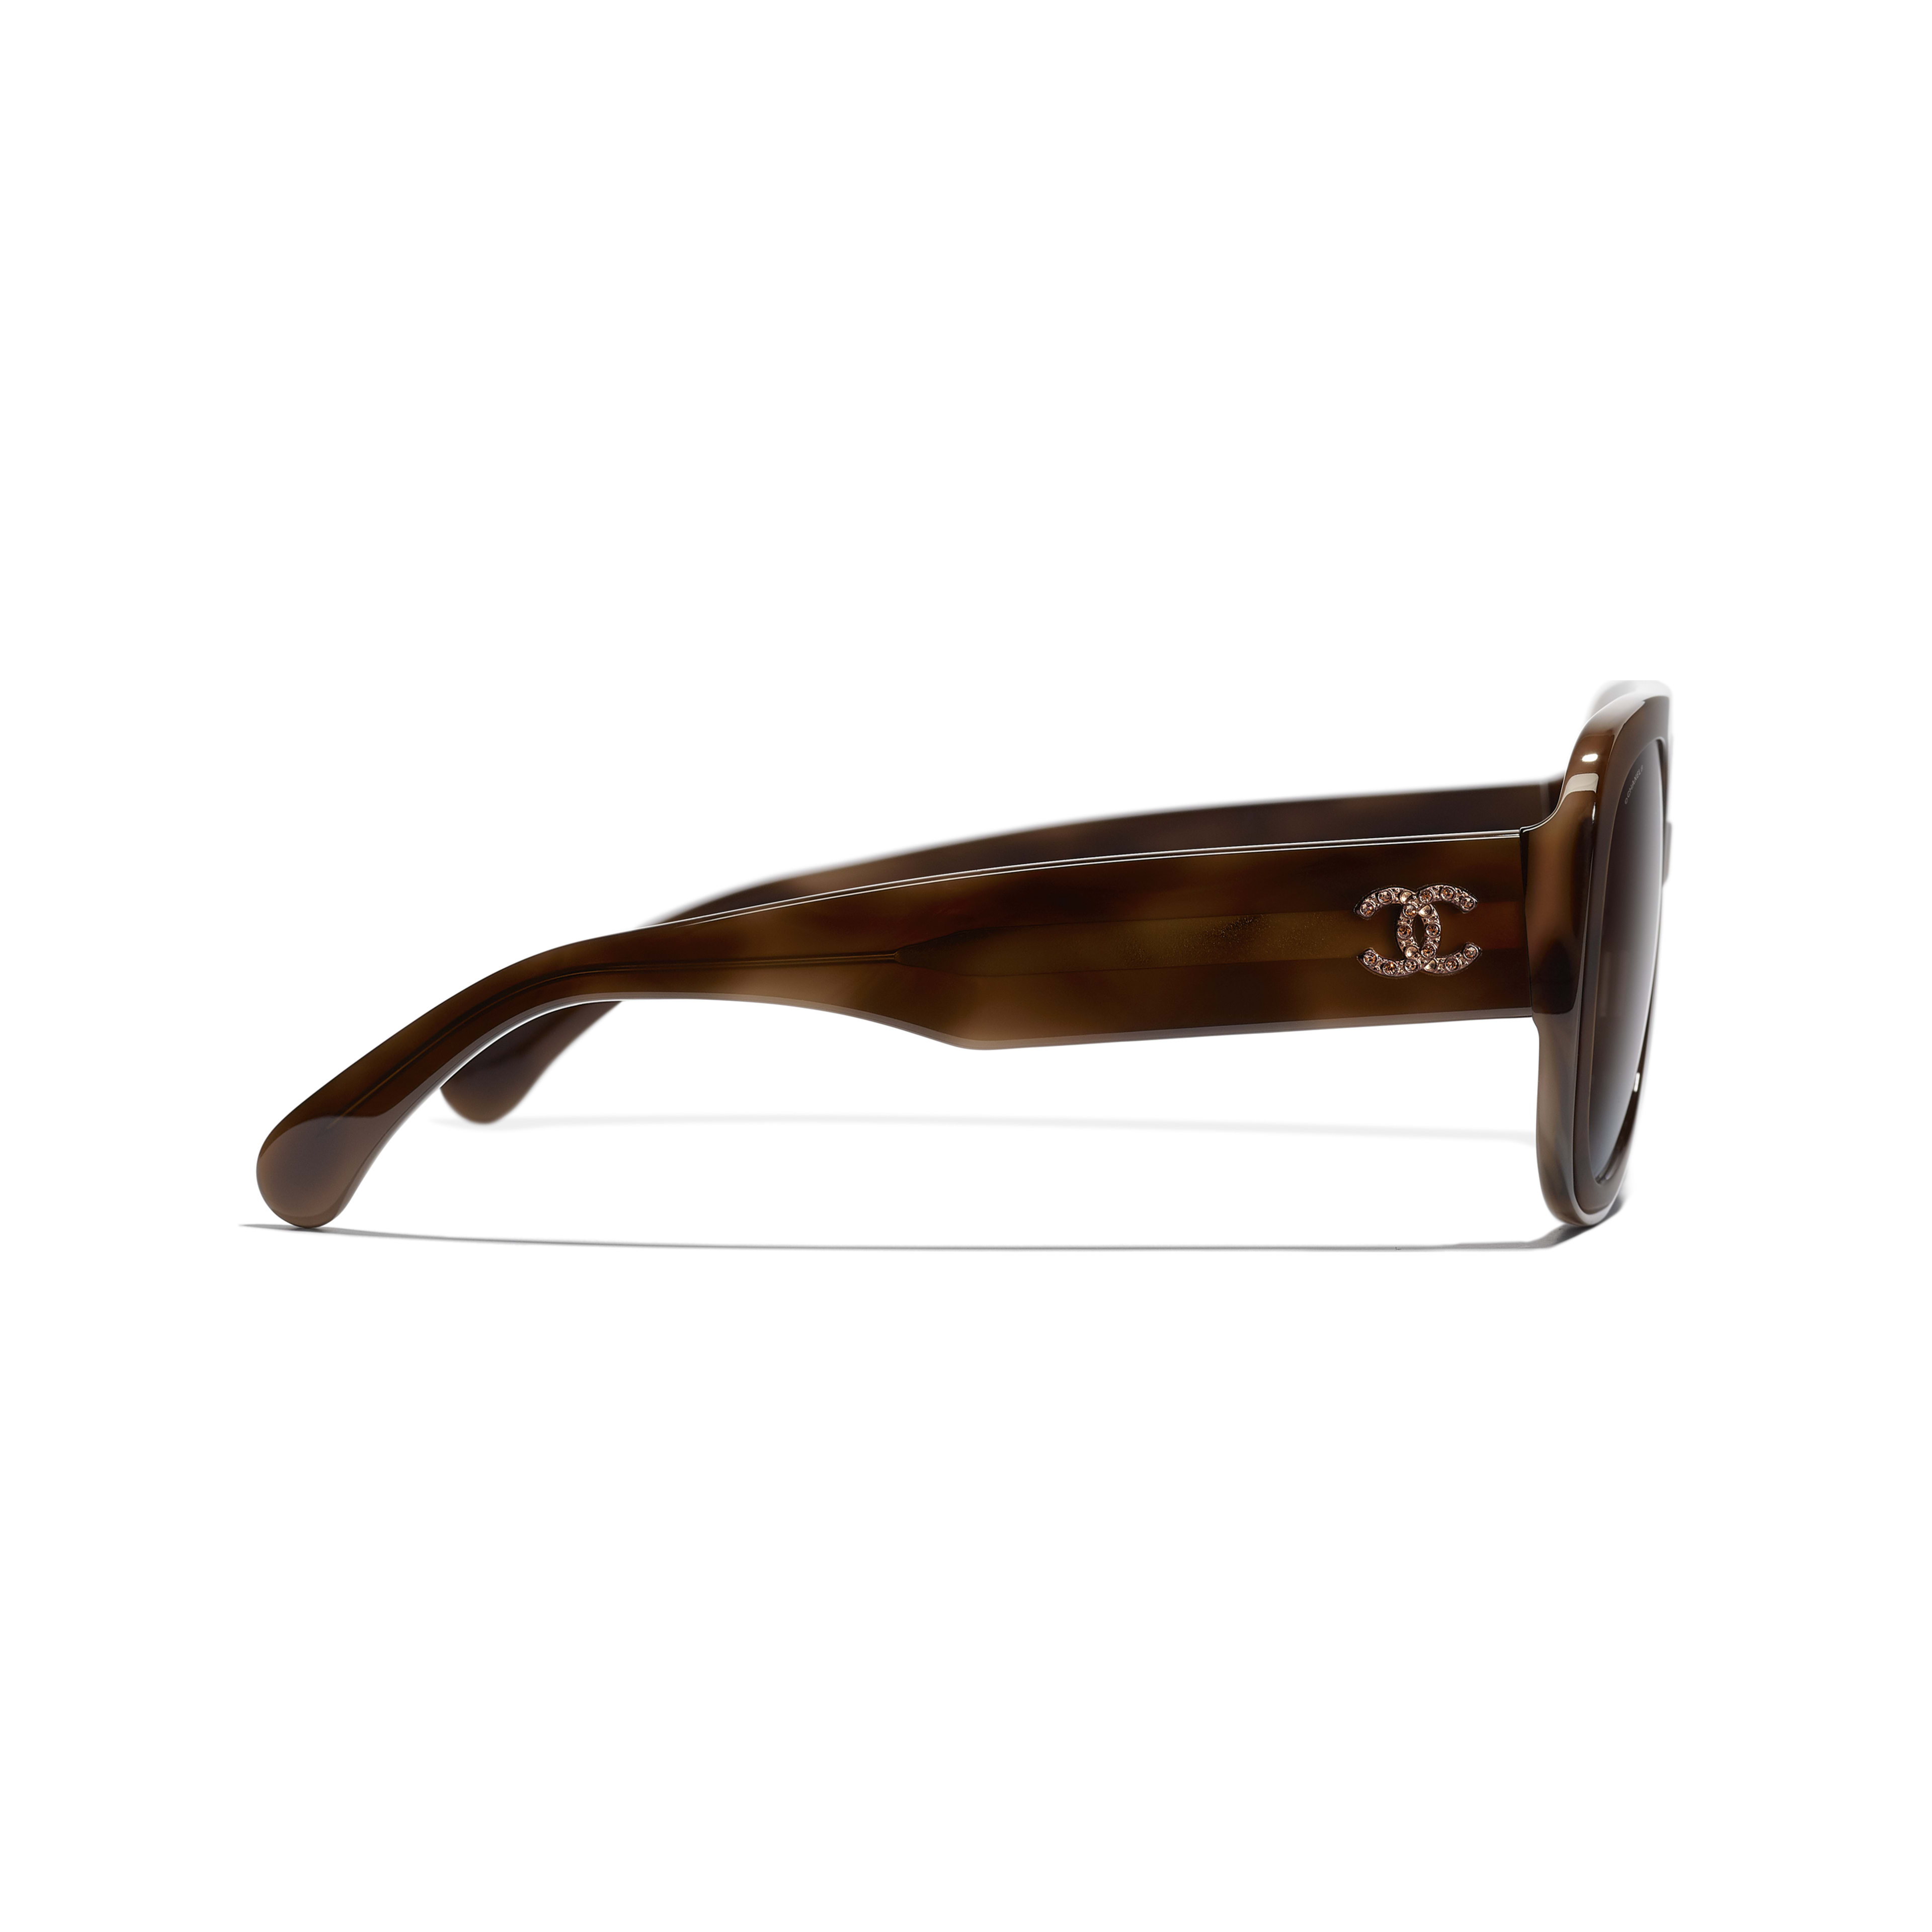 Pilot Sunglasses - Tortoise - Acetate & Strass - Other view - see full sized version